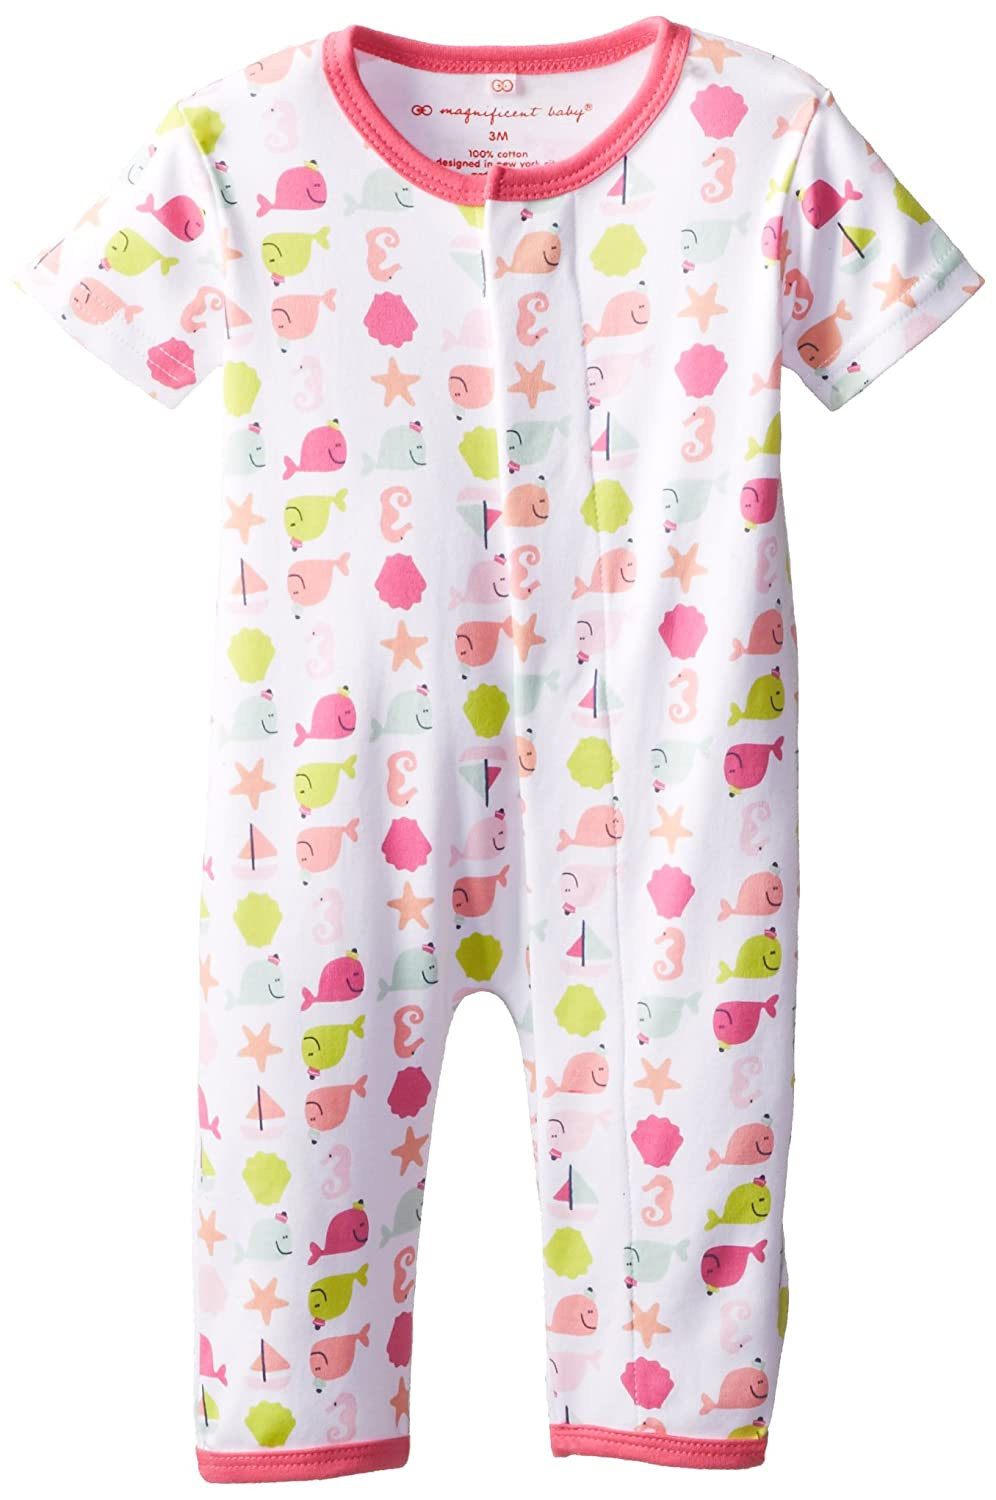 Nantucket 9 Months Magnificent Baby Girls Short Sleeve Union Suit